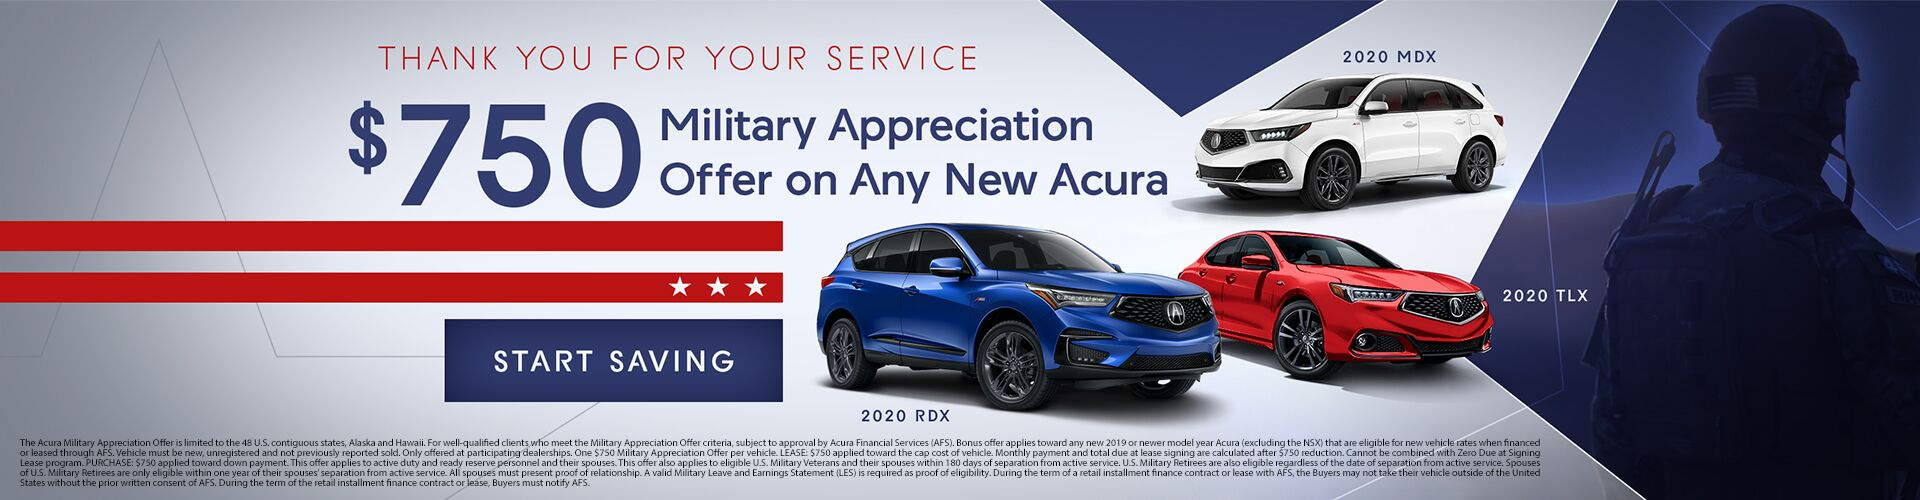 Acura Military Appreciation Offer